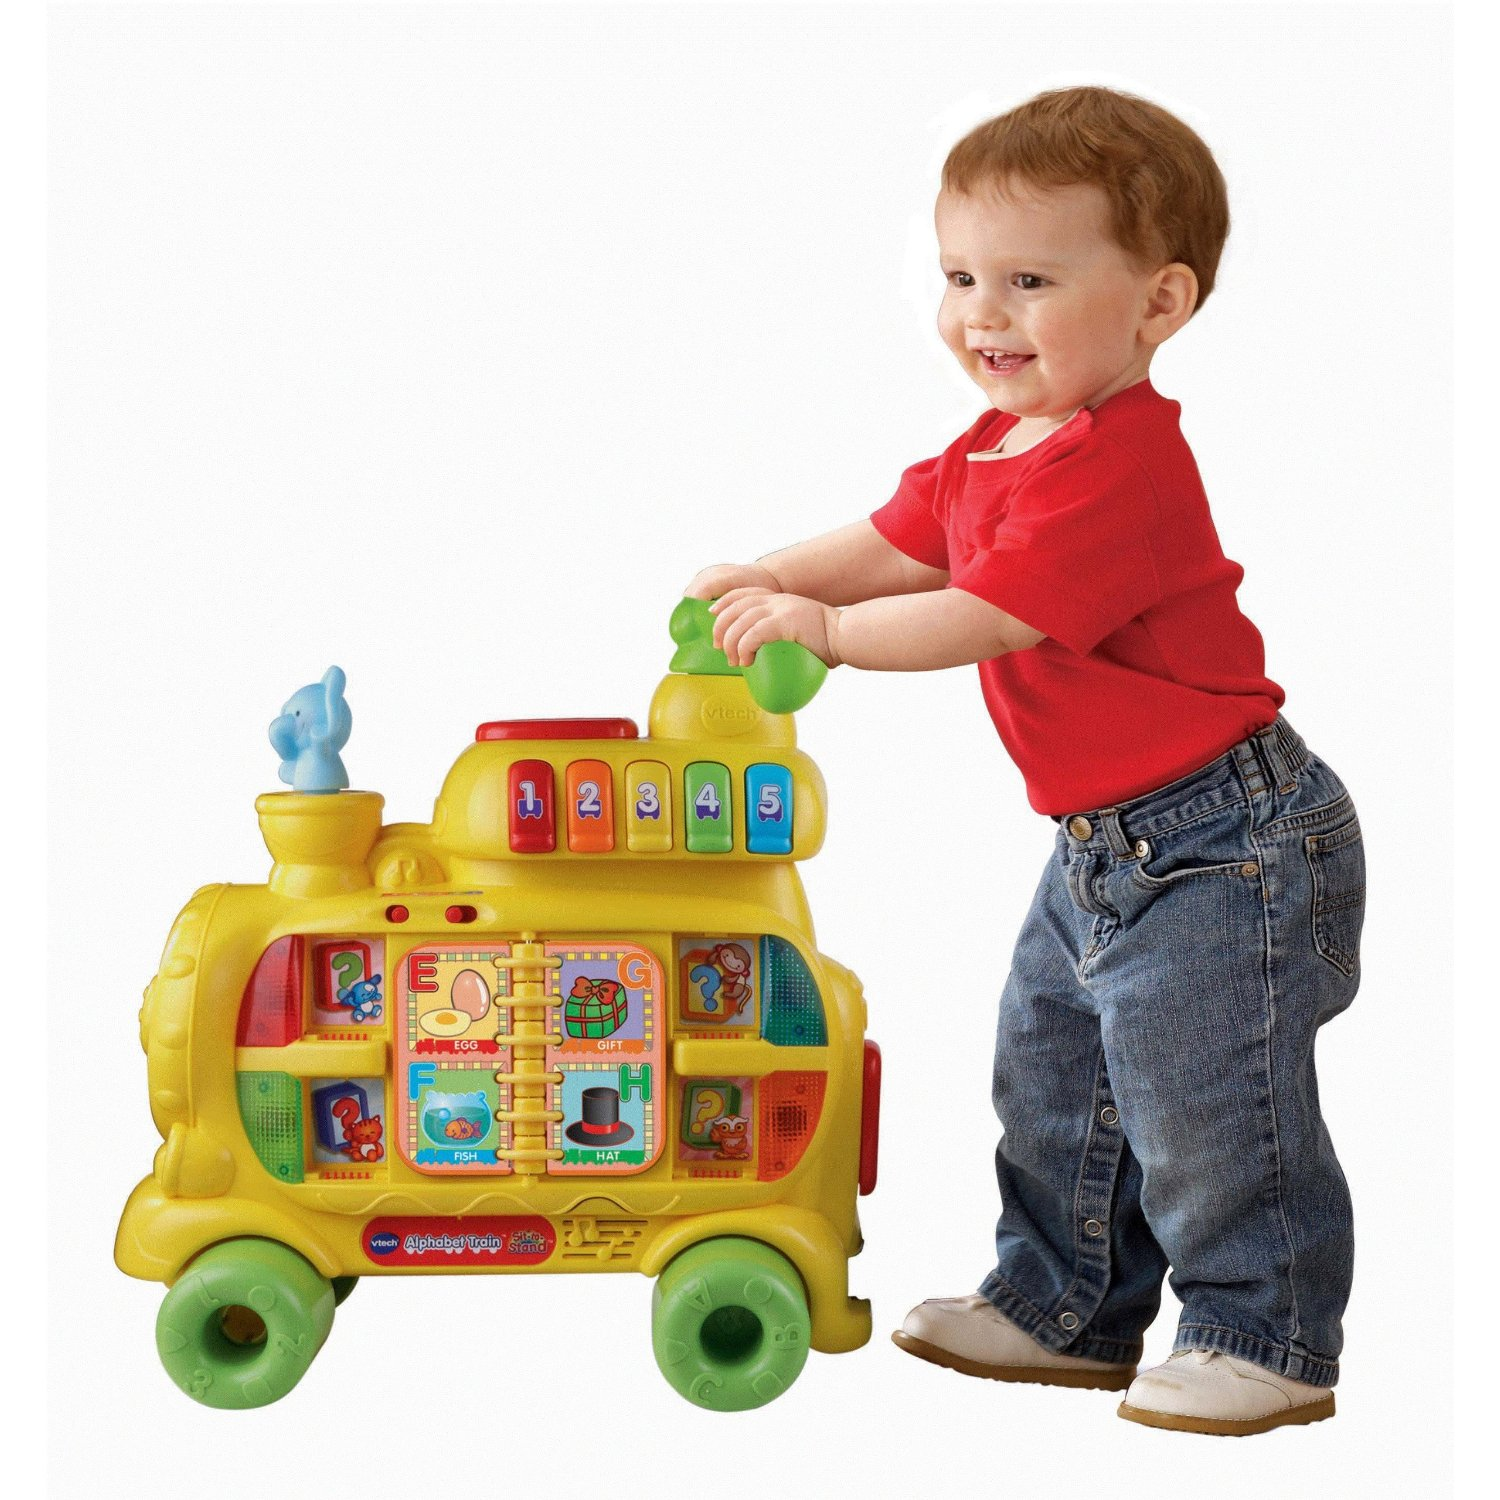 You can use alone for floor play push along as a walker or attach to the carriage as a ride on toy Plus with the Sit to Stand Alphabet Train